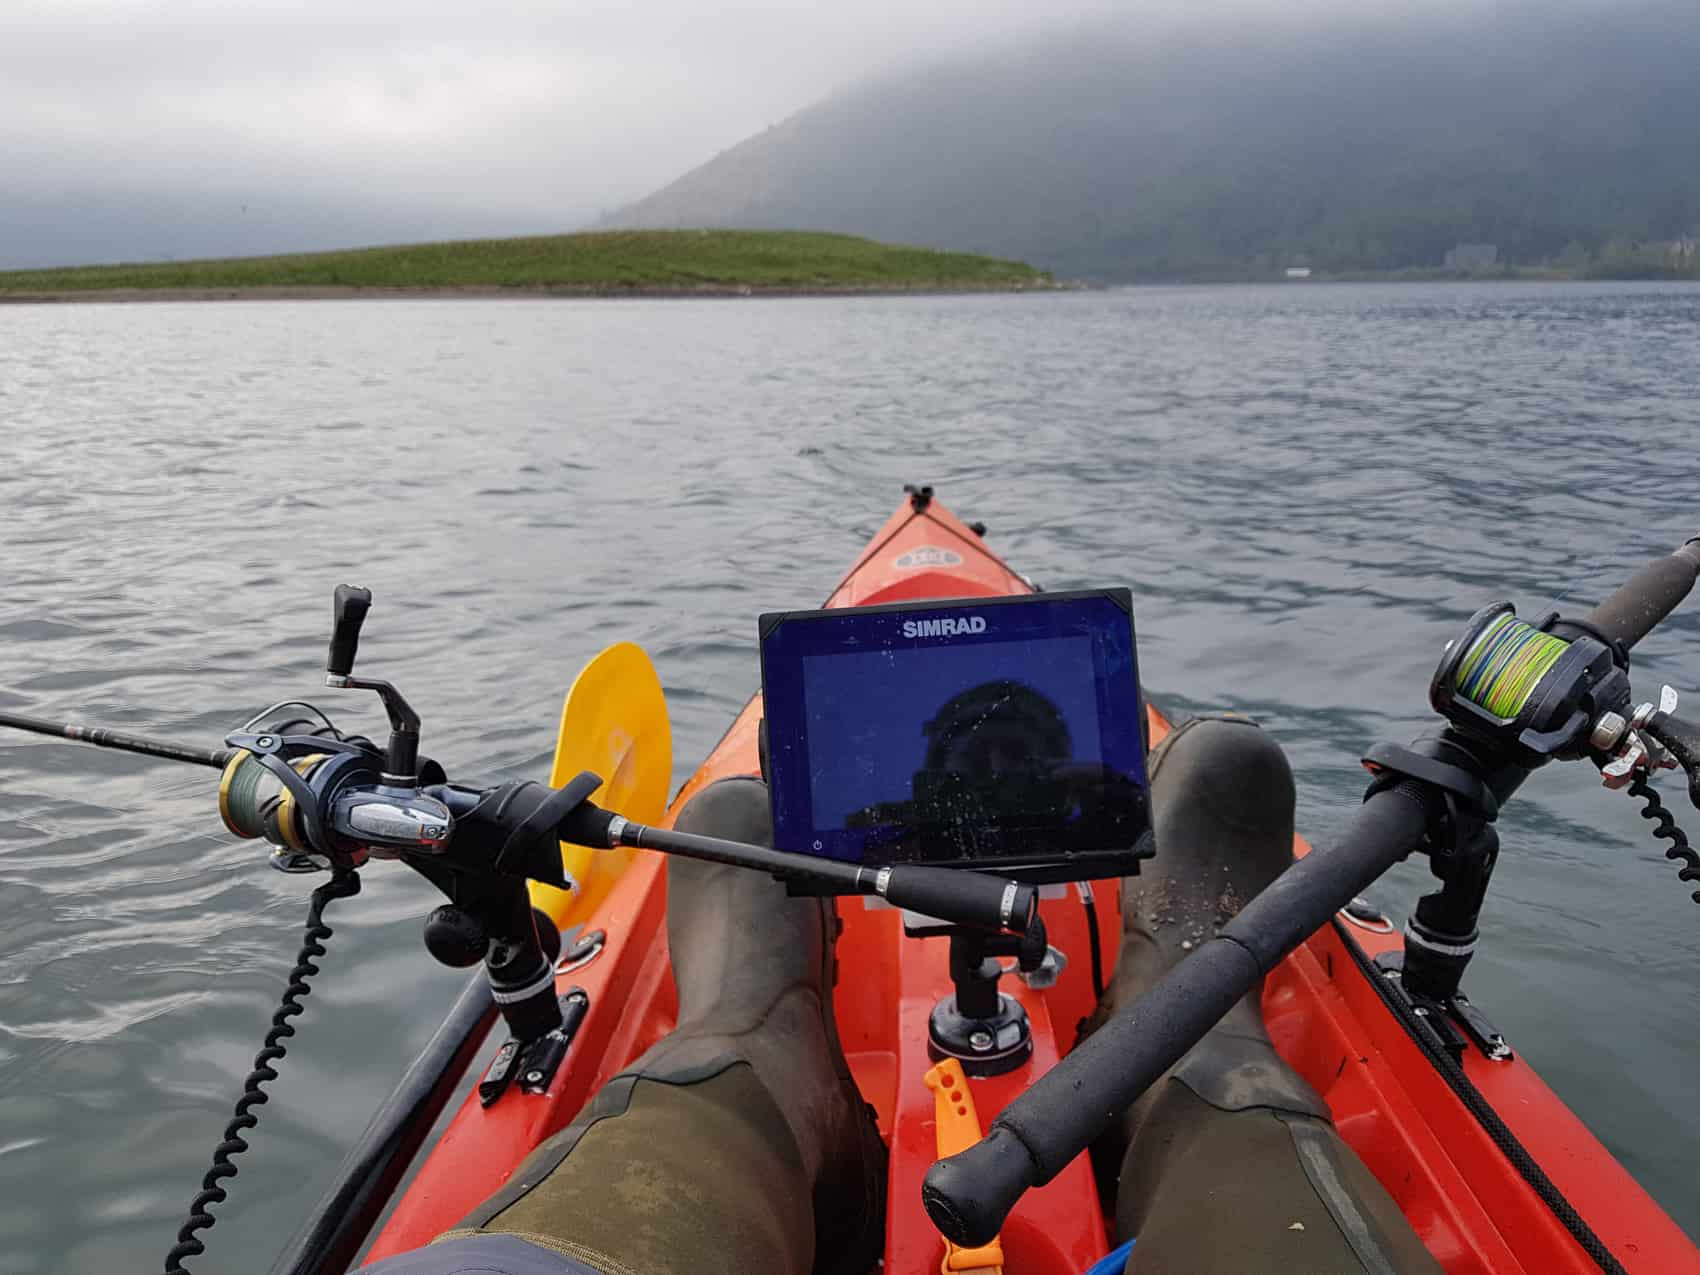 Initial kayak fishing setup - with room for improvement